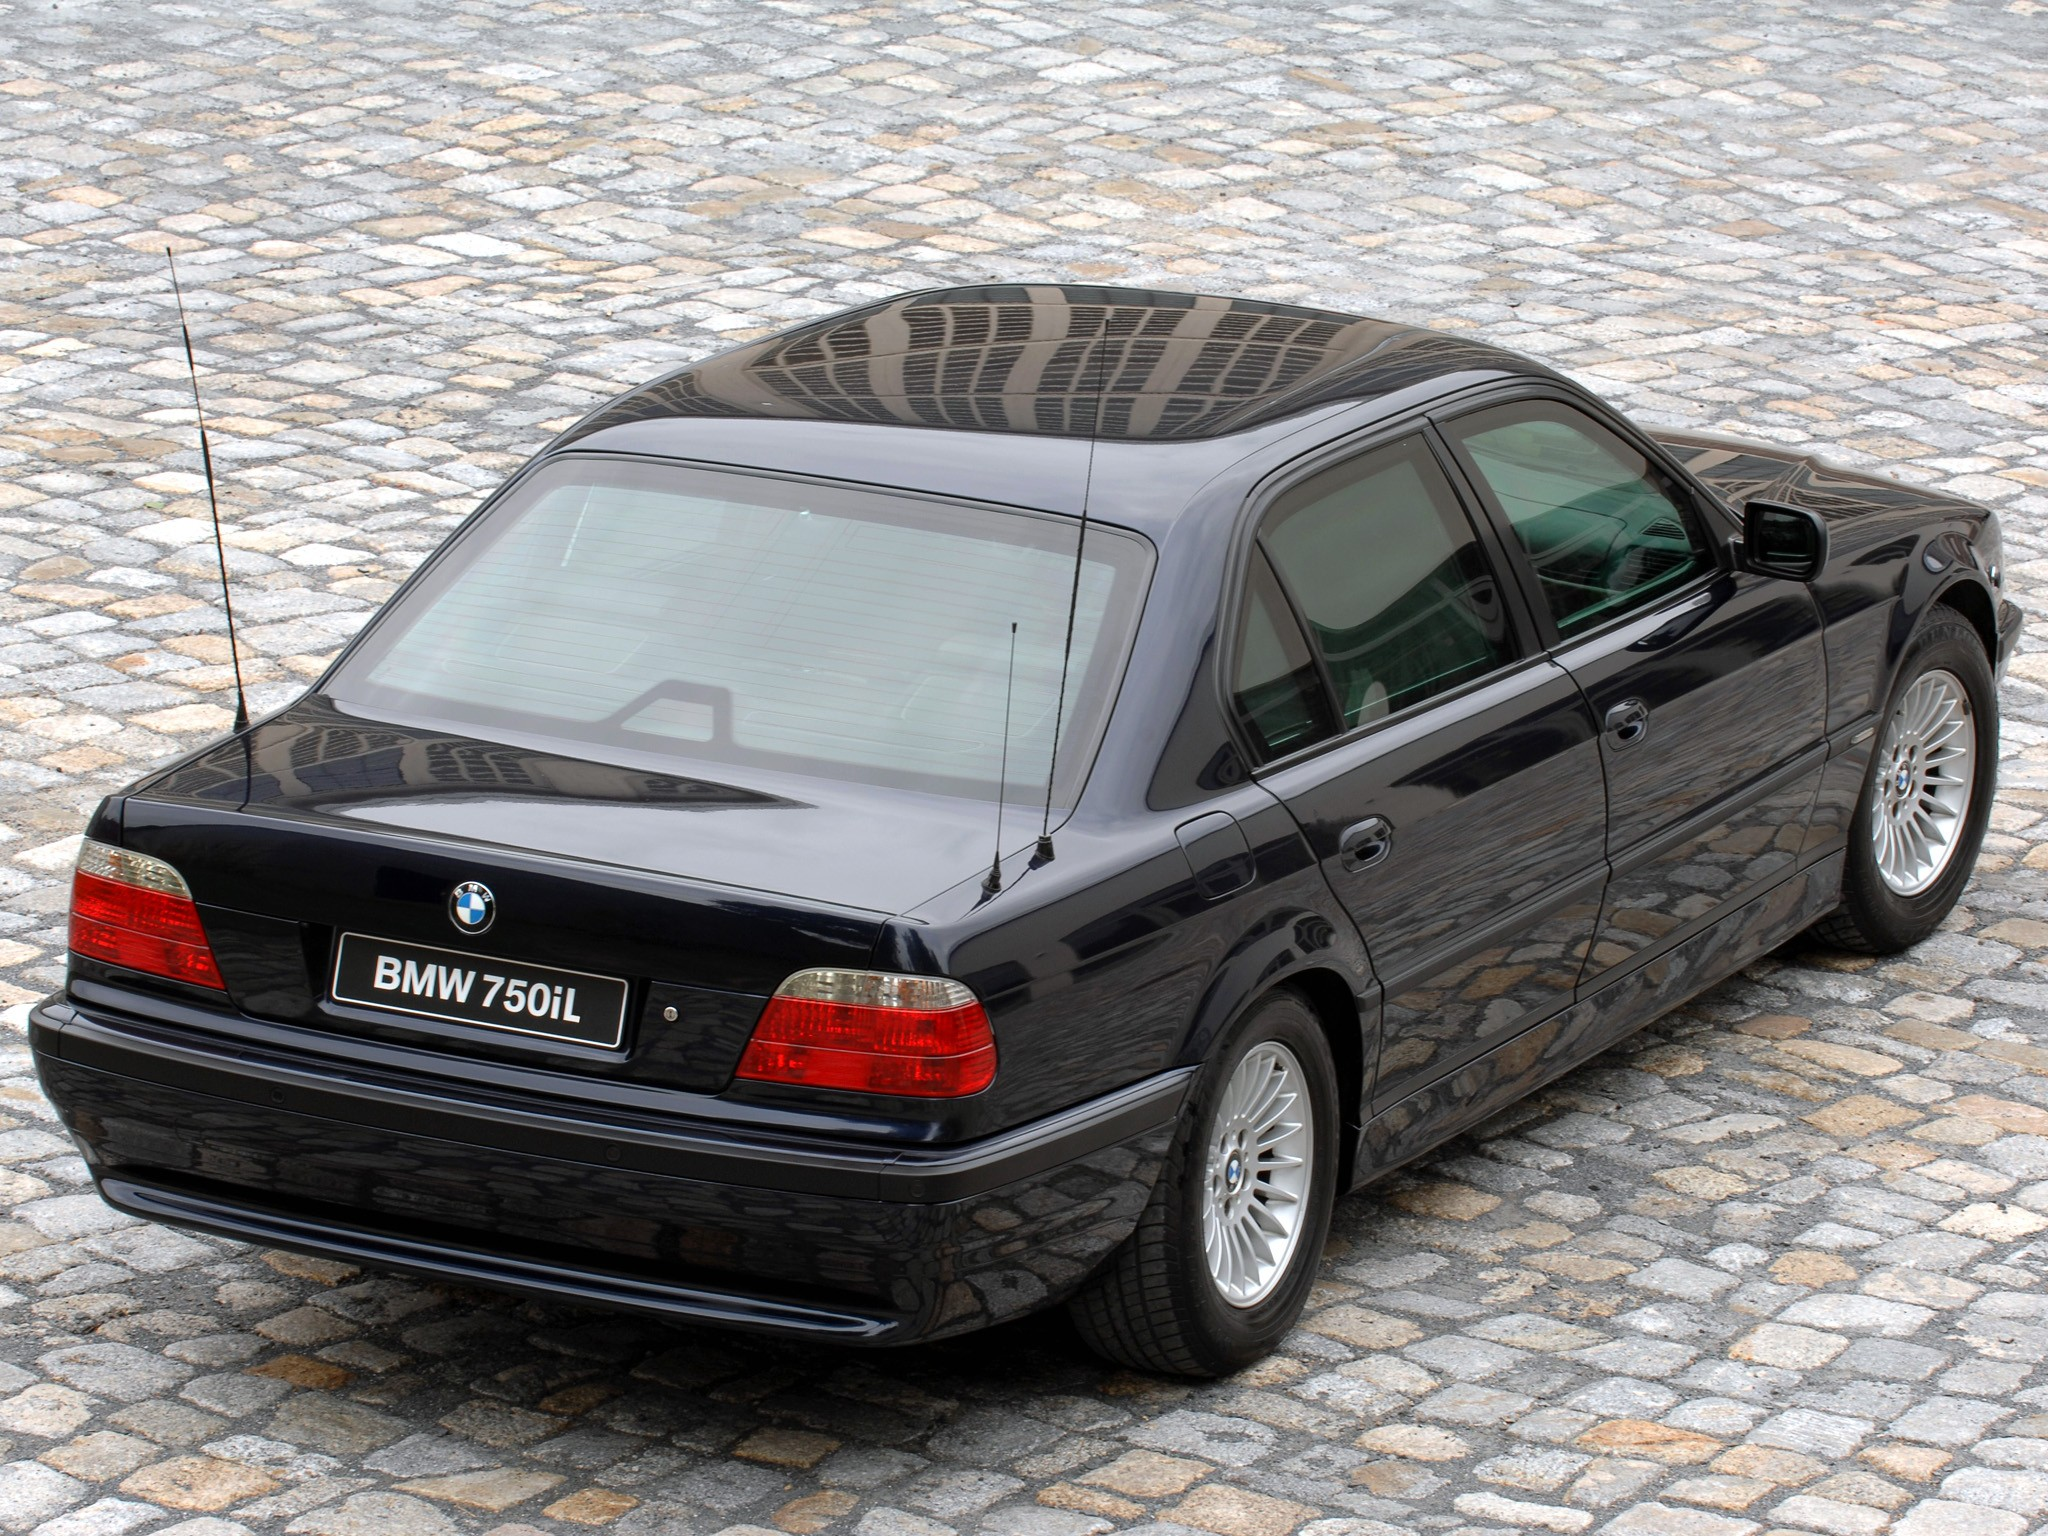 bmw 7 series e38 specs 1998 1999 2000 2001 autoevolution. Black Bedroom Furniture Sets. Home Design Ideas